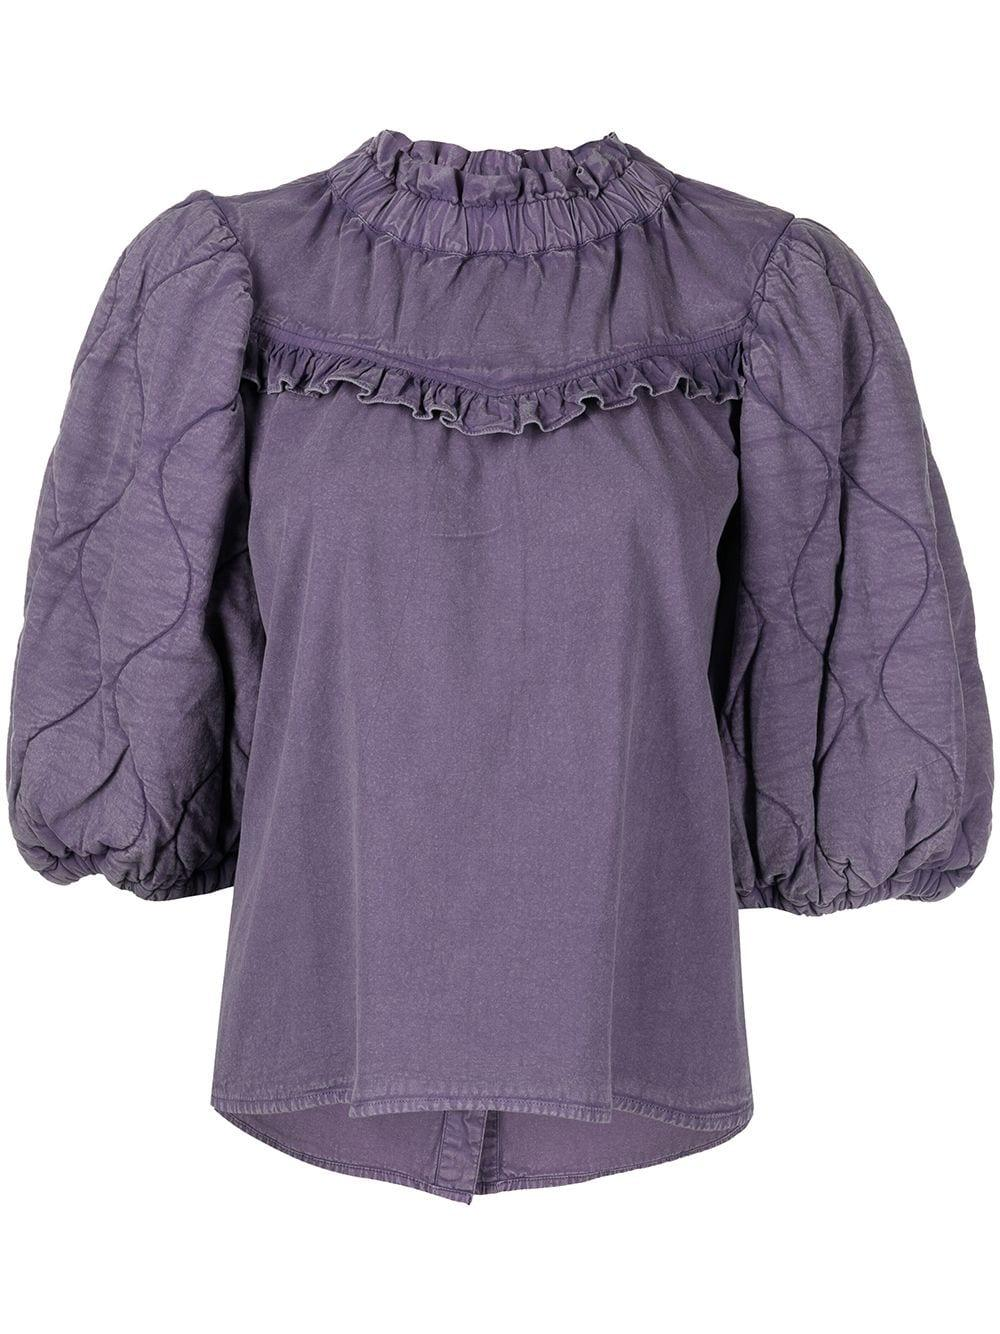 Layla Quilted Puff Sleeve Top Item # AW21-027